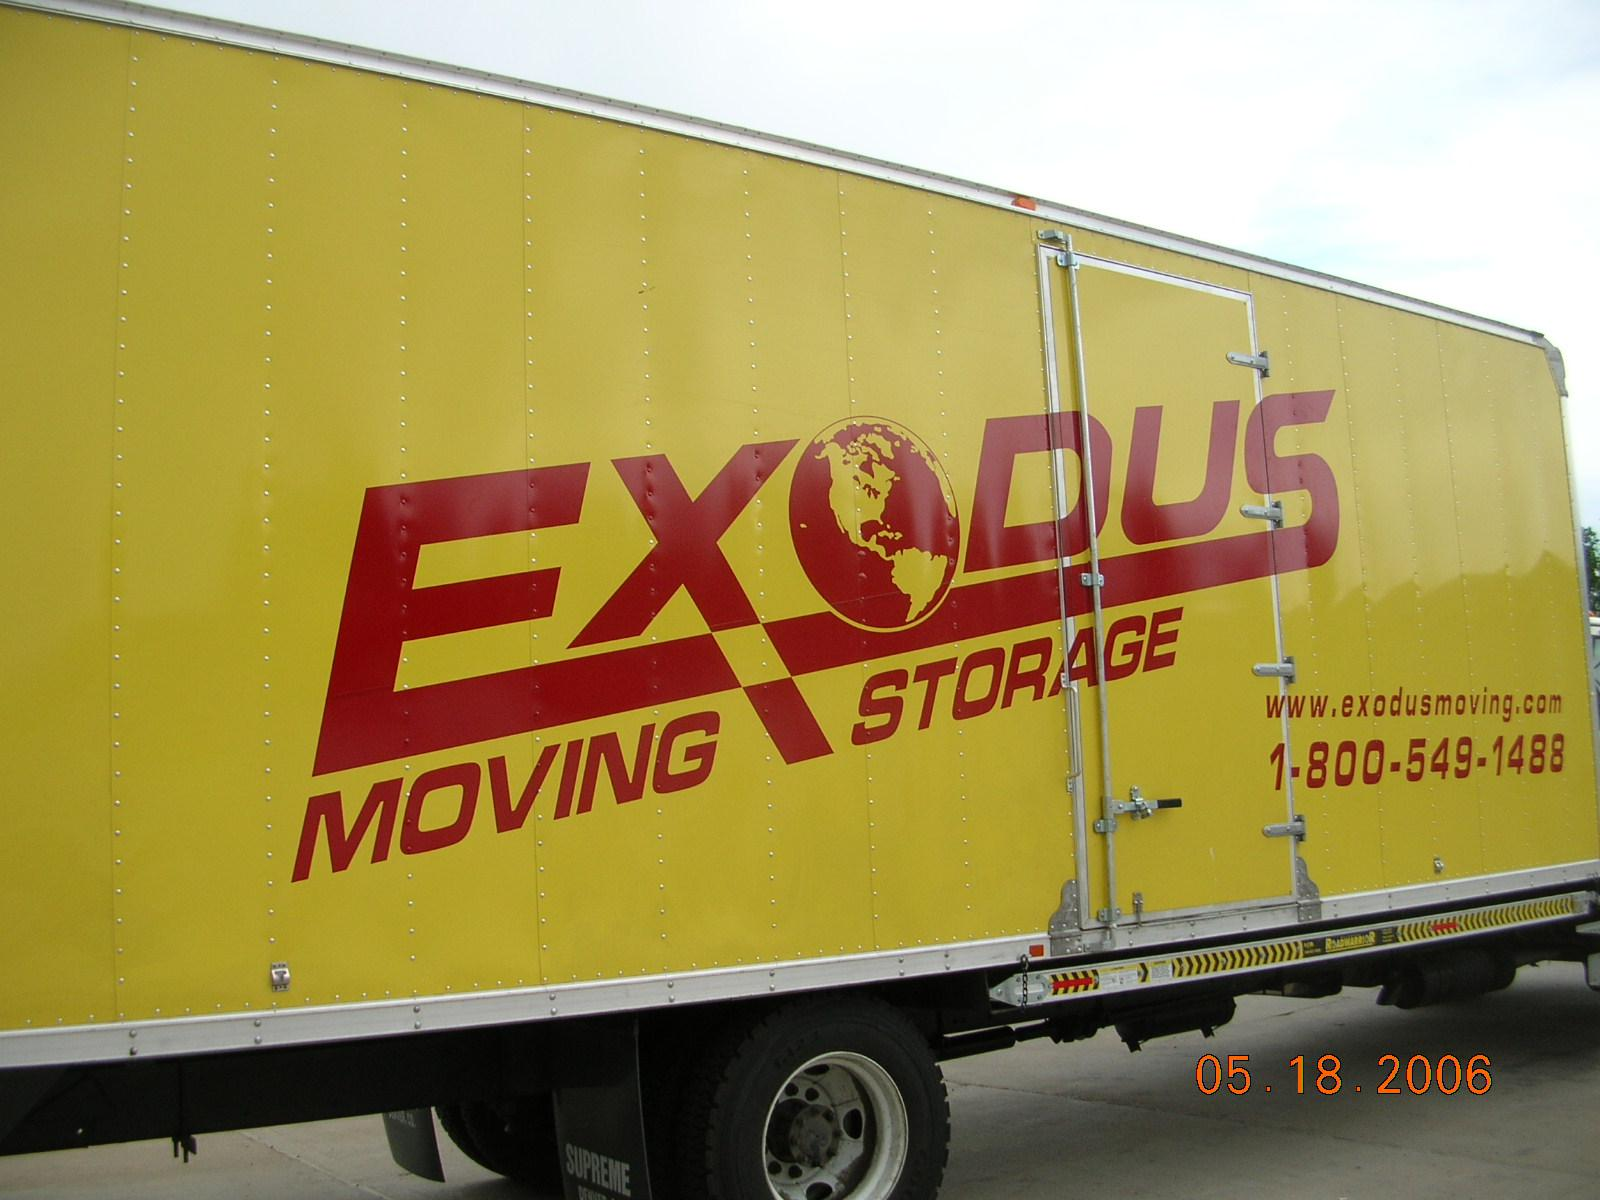 Vehicle Decals  Lettering For Your Business Signarama - Vehicle decals for business application